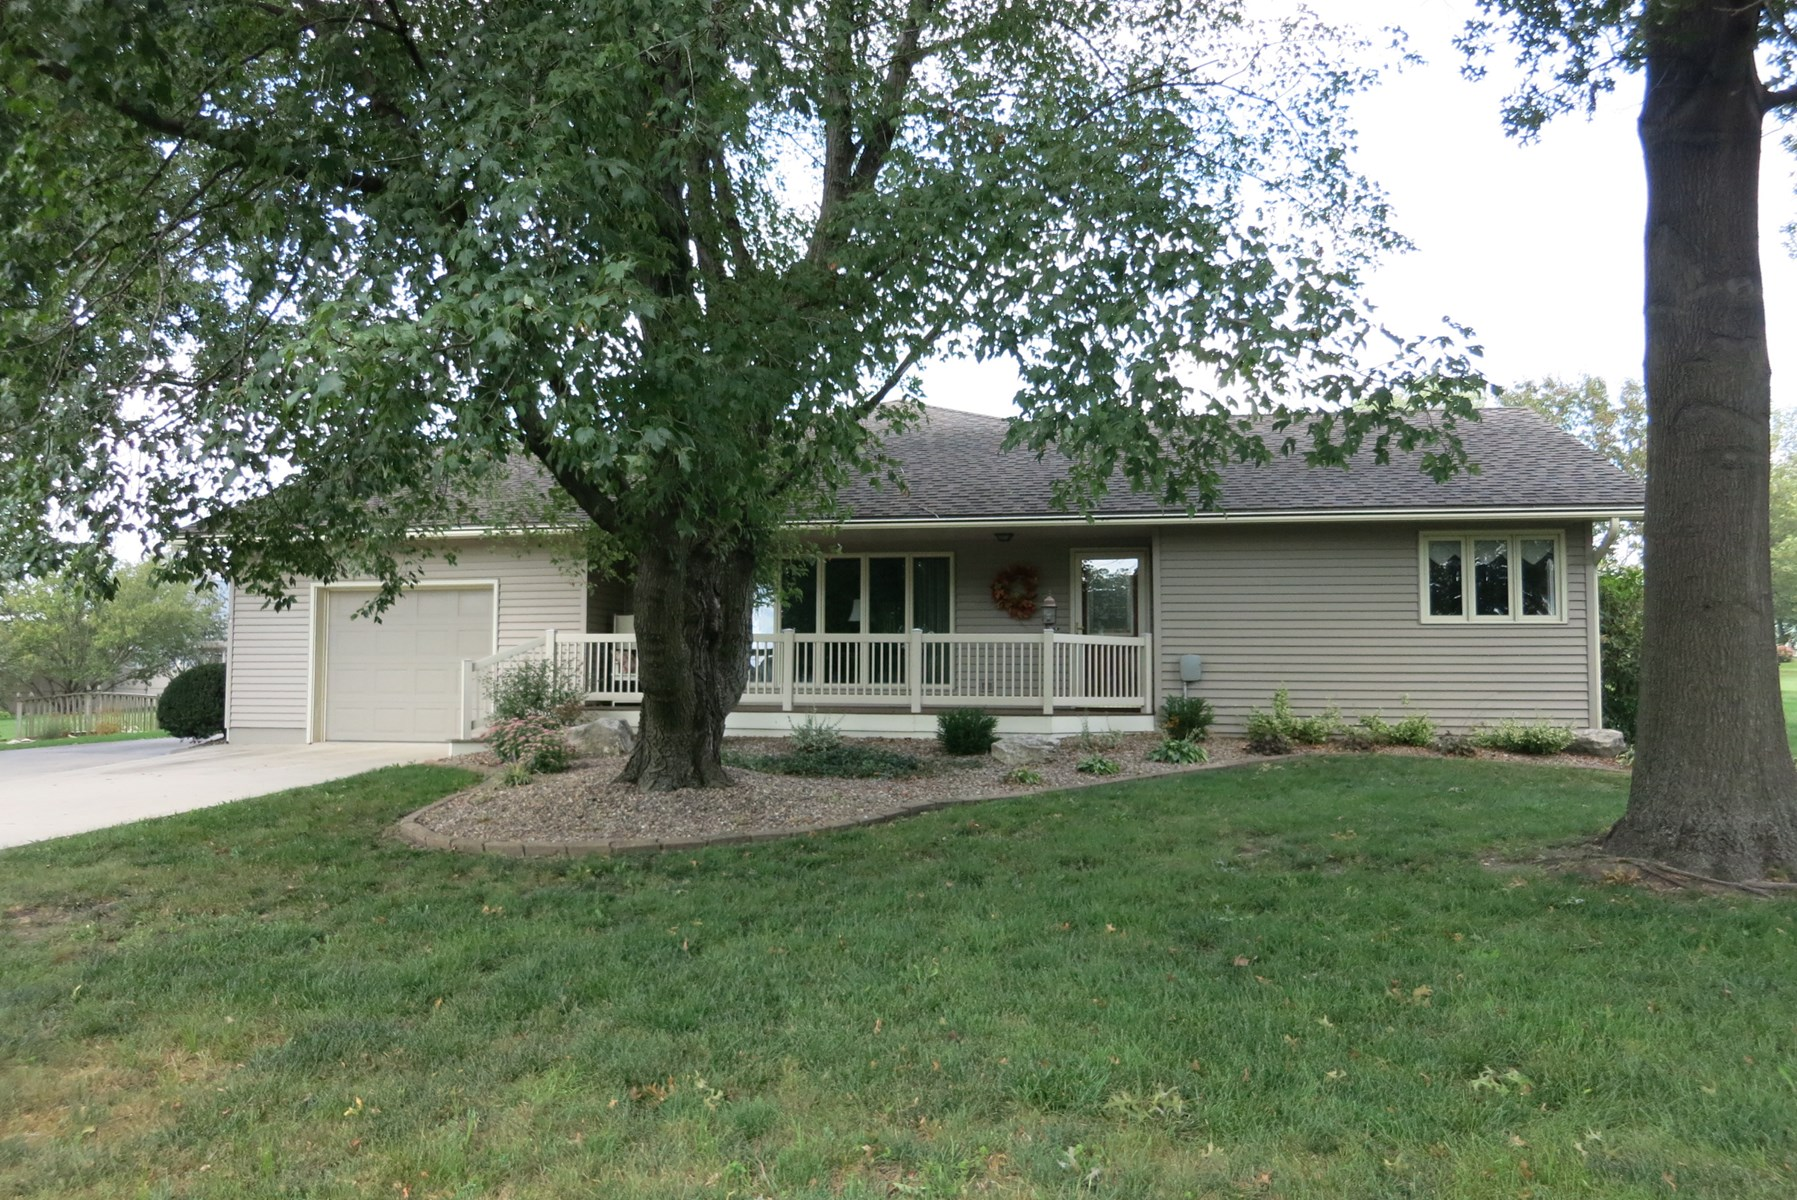 Ranch Home on Large Lot in Bethany Missouri